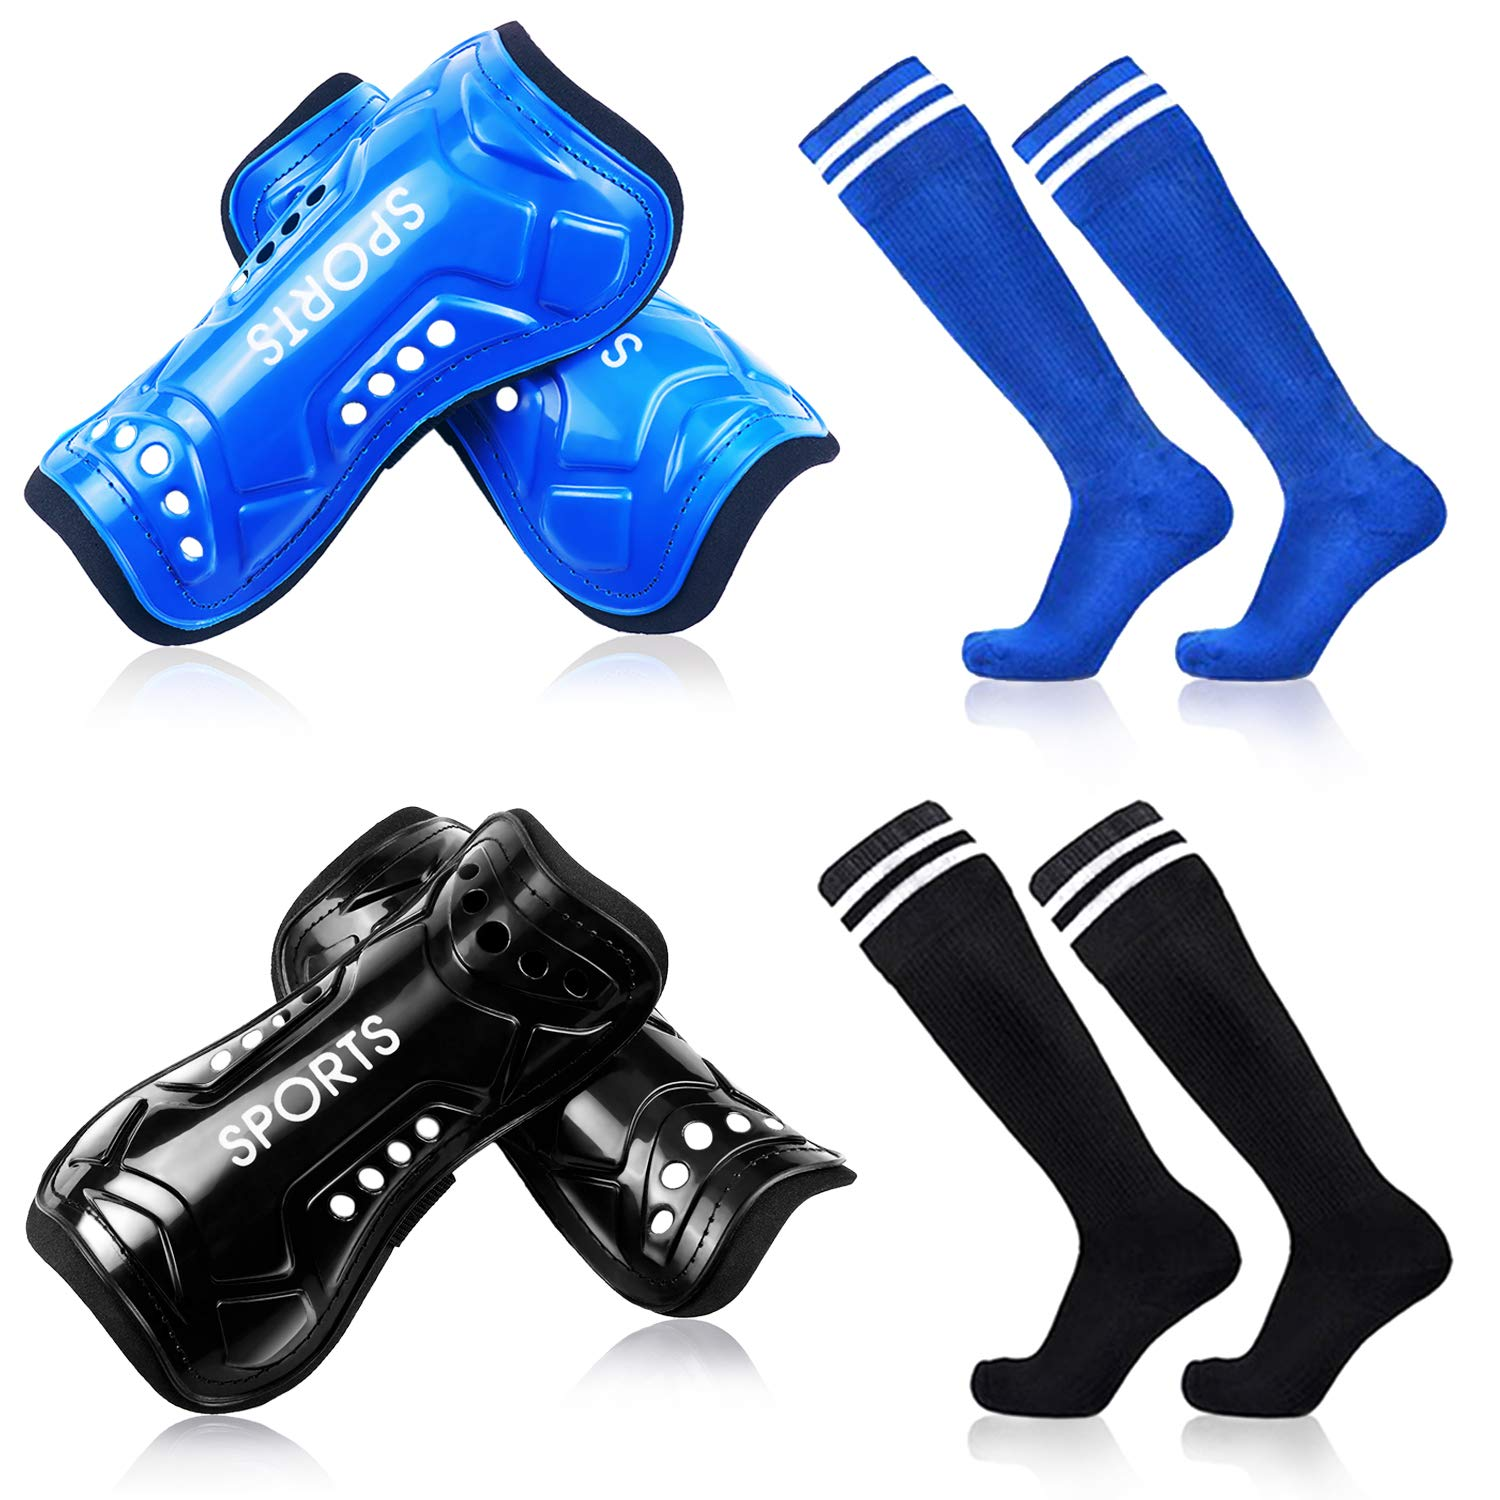 Youth Soccer Shin Guards, 2 Pair Lightweight and Breathable Child Calf Protective Gear Soccer Equipment for 12-16 Years Old Boys Girls Children Teenagers